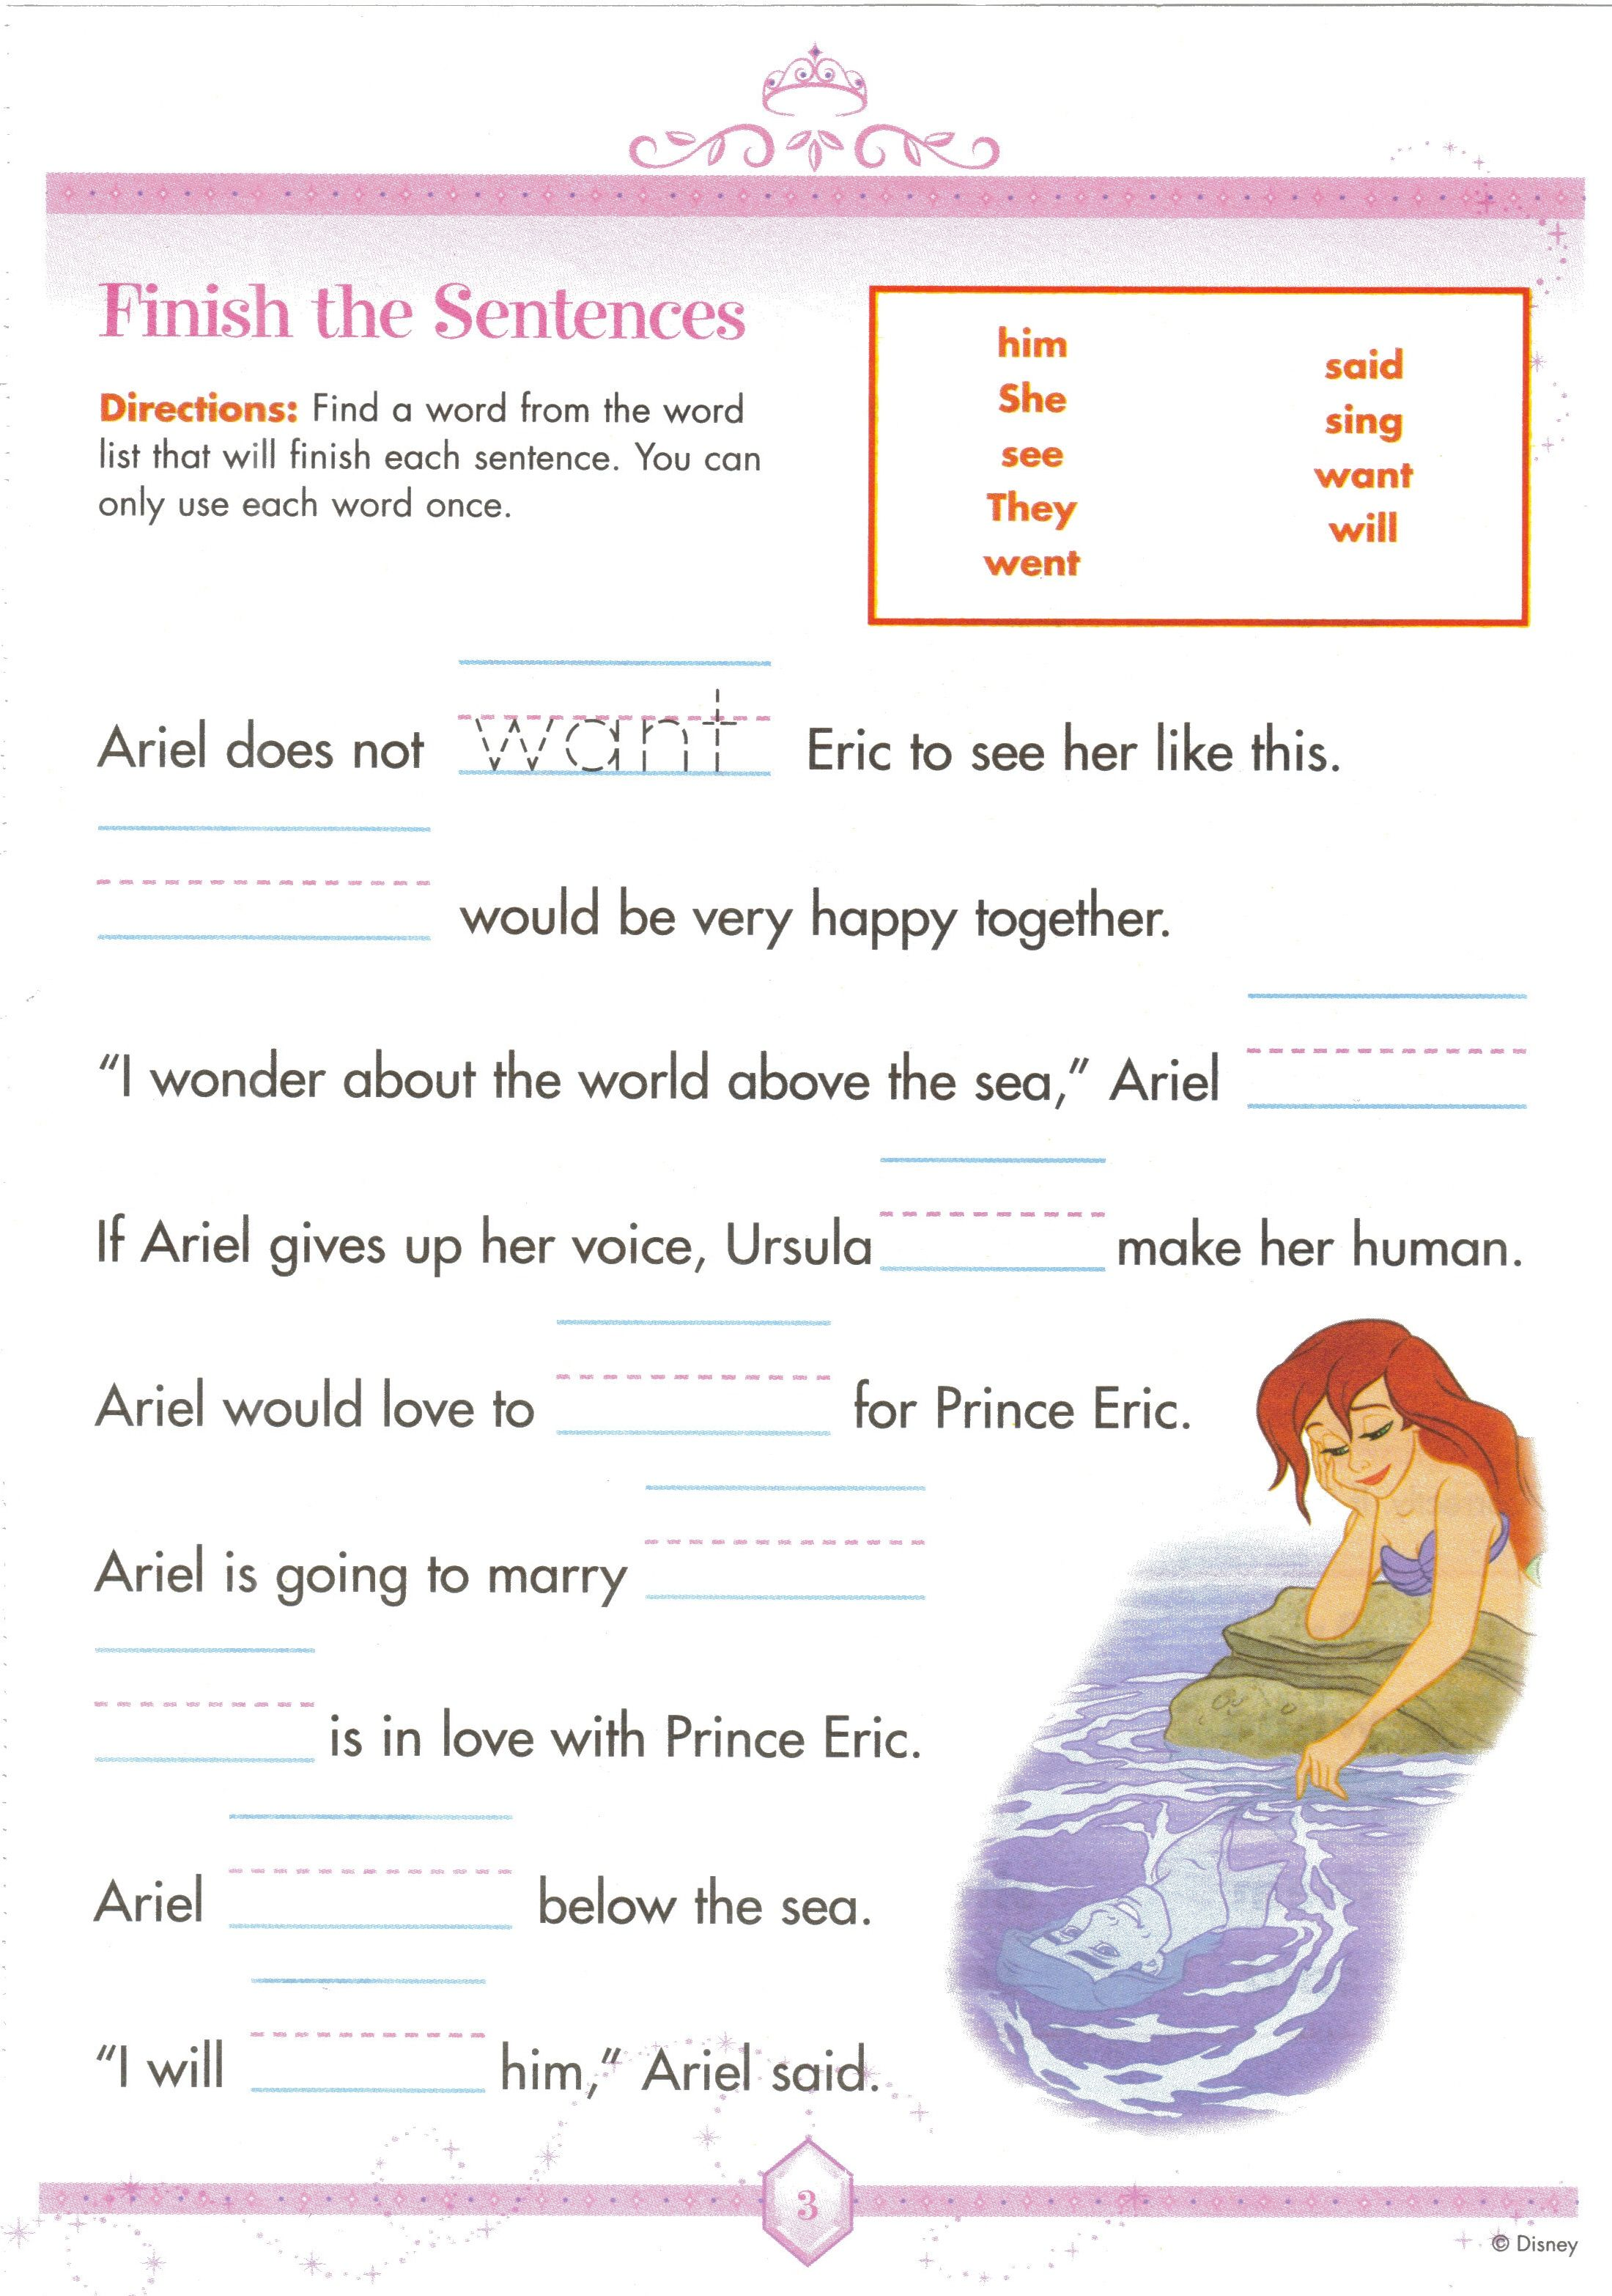 Proatmealus  Picturesque  Images About Worksheets On Pinterest  Fun Facts For Kids  With Luxury  Images About Worksheets On Pinterest  Fun Facts For Kids Earth Day Worksheets And Jungles With Extraordinary Bible Study Worksheets For Adults Also Free Handwriting Worksheet Maker In Addition Oo Worksheets And Columbus Day Worksheets As Well As  Grade Worksheets Additionally Printable First Grade Worksheets From Pinterestcom With Proatmealus  Luxury  Images About Worksheets On Pinterest  Fun Facts For Kids  With Extraordinary  Images About Worksheets On Pinterest  Fun Facts For Kids Earth Day Worksheets And Jungles And Picturesque Bible Study Worksheets For Adults Also Free Handwriting Worksheet Maker In Addition Oo Worksheets From Pinterestcom